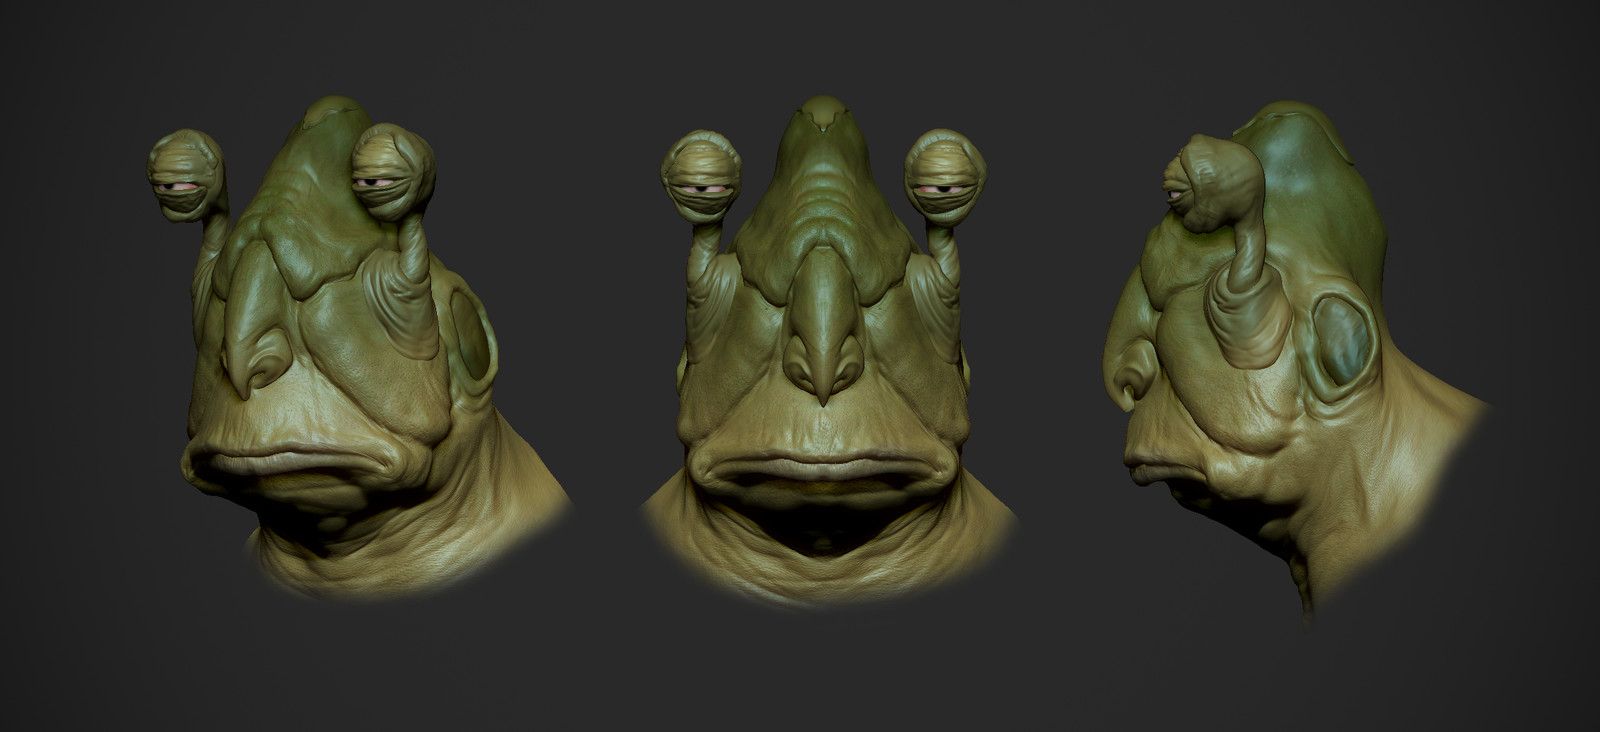 Creature from star wars concept artist P Gelev WIP